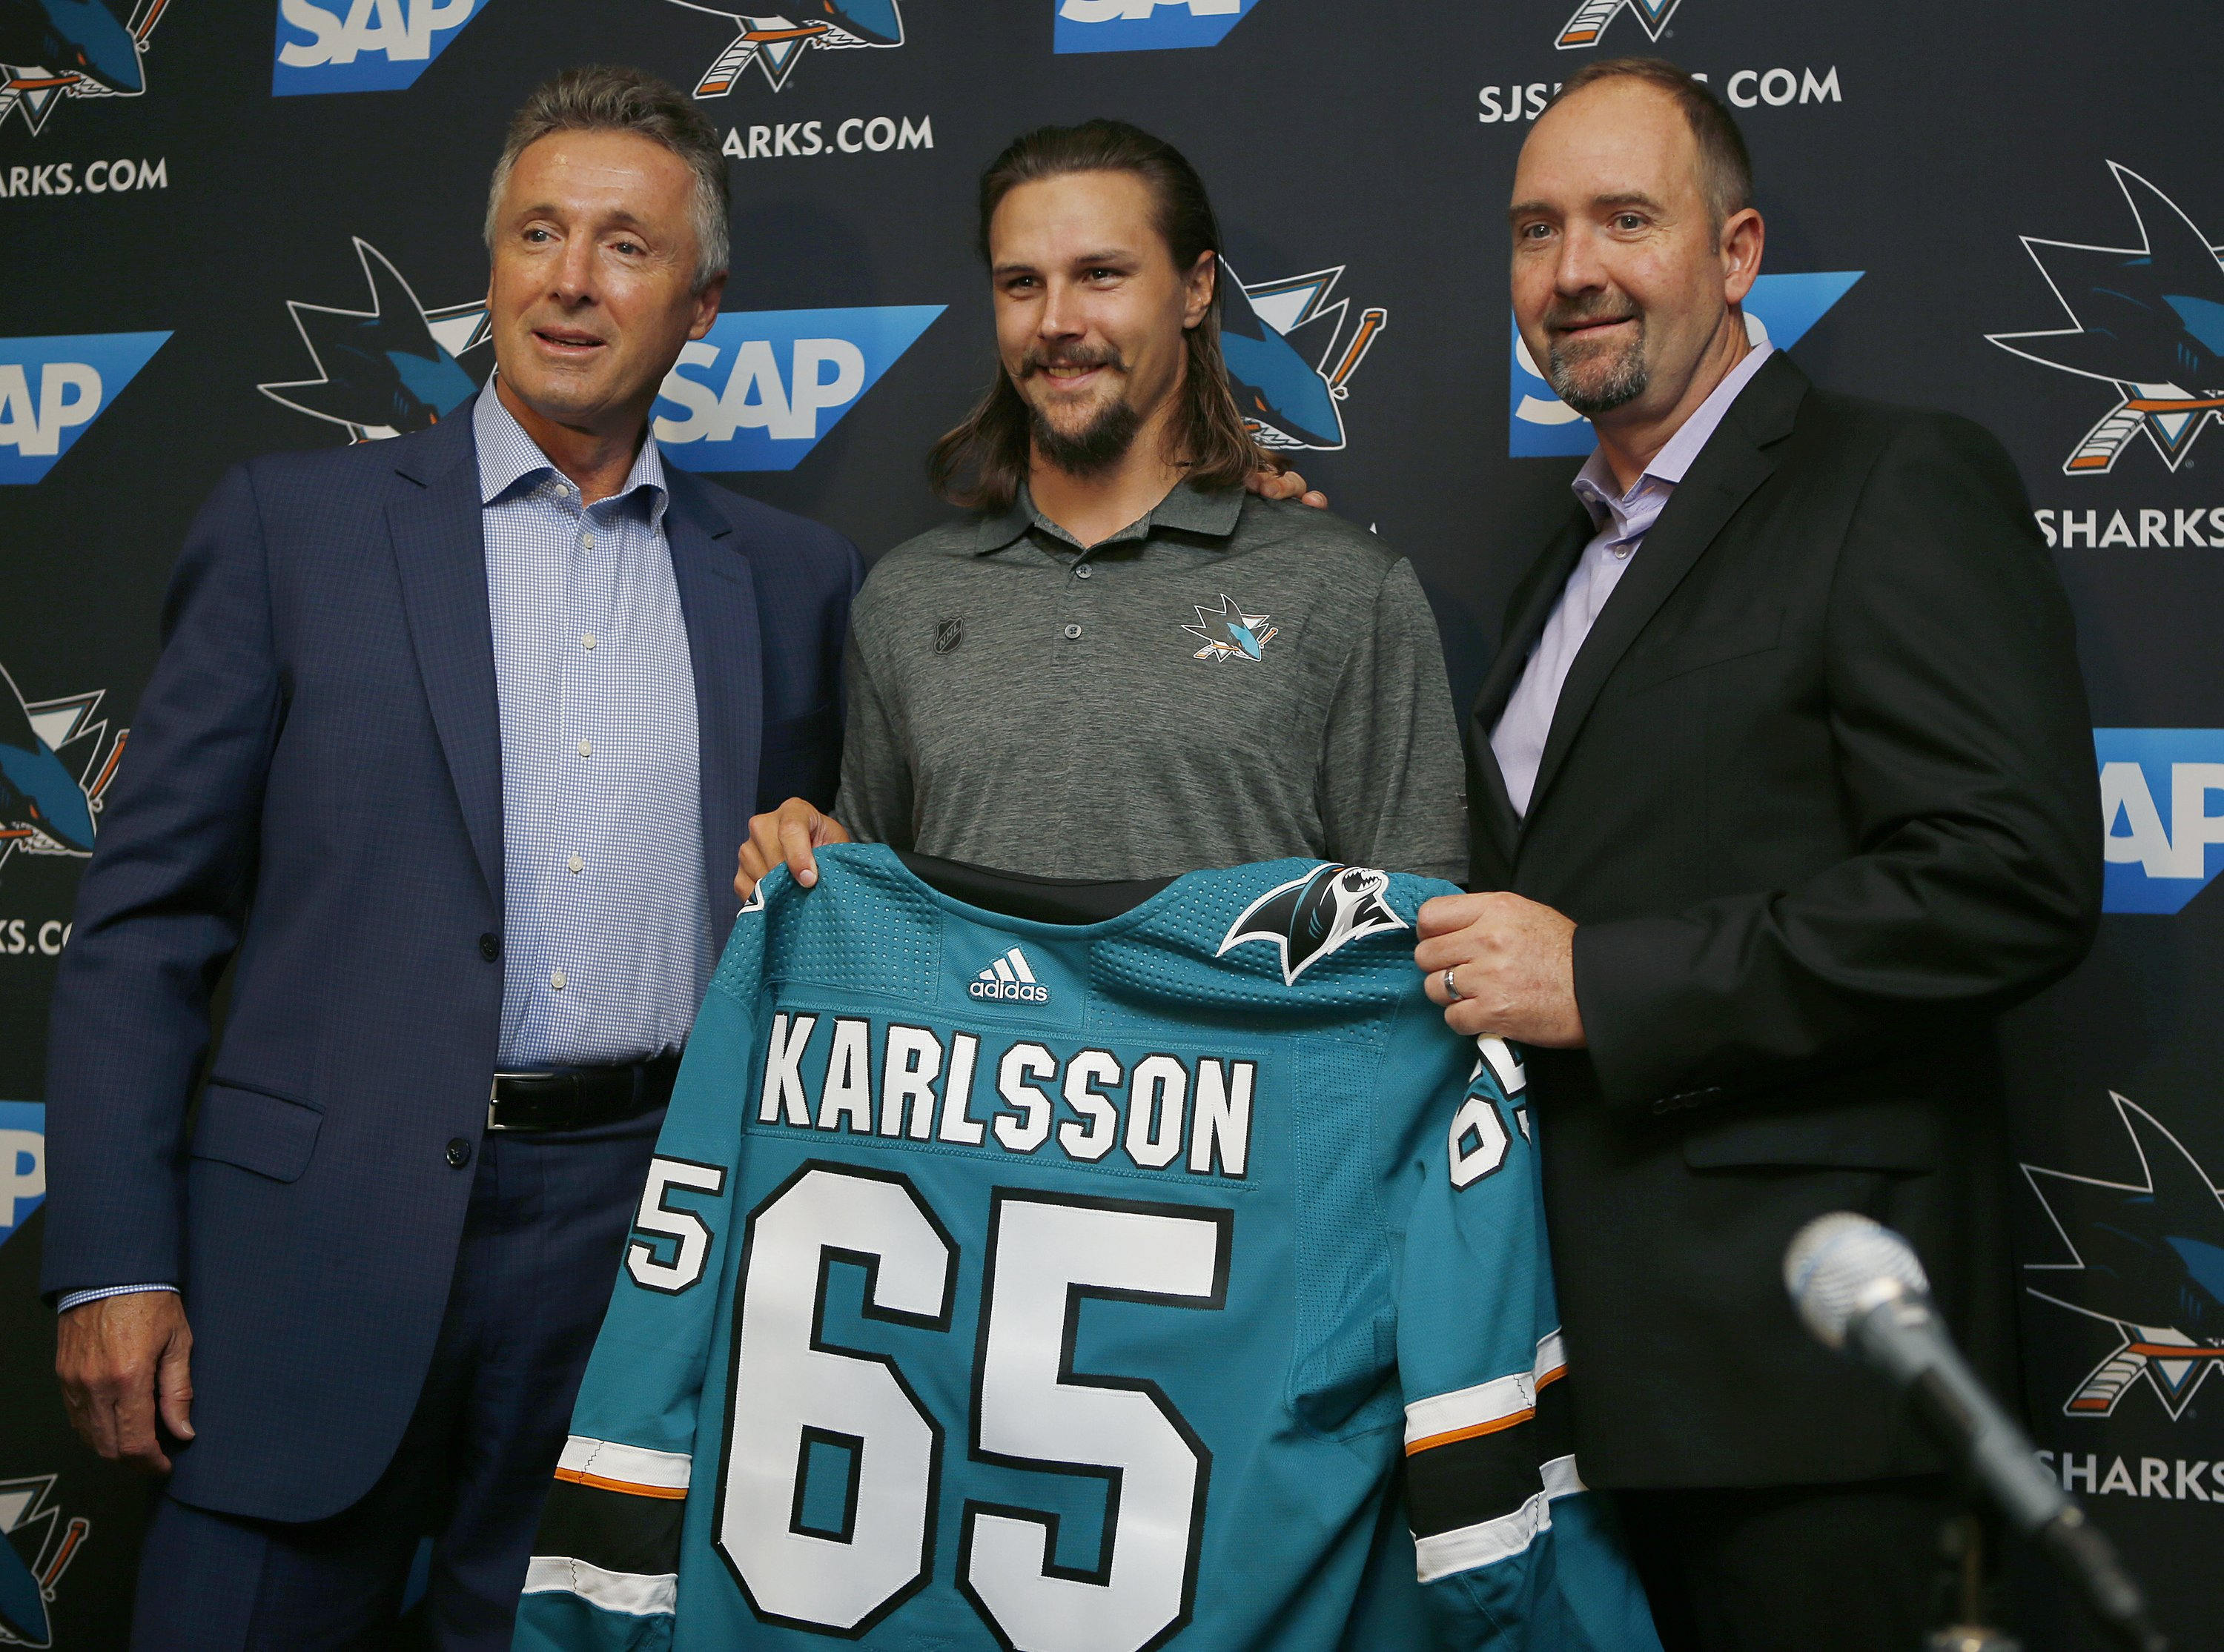 new styles 8719a 60399 Sharks add Erik Karlsson for big boost to blue line